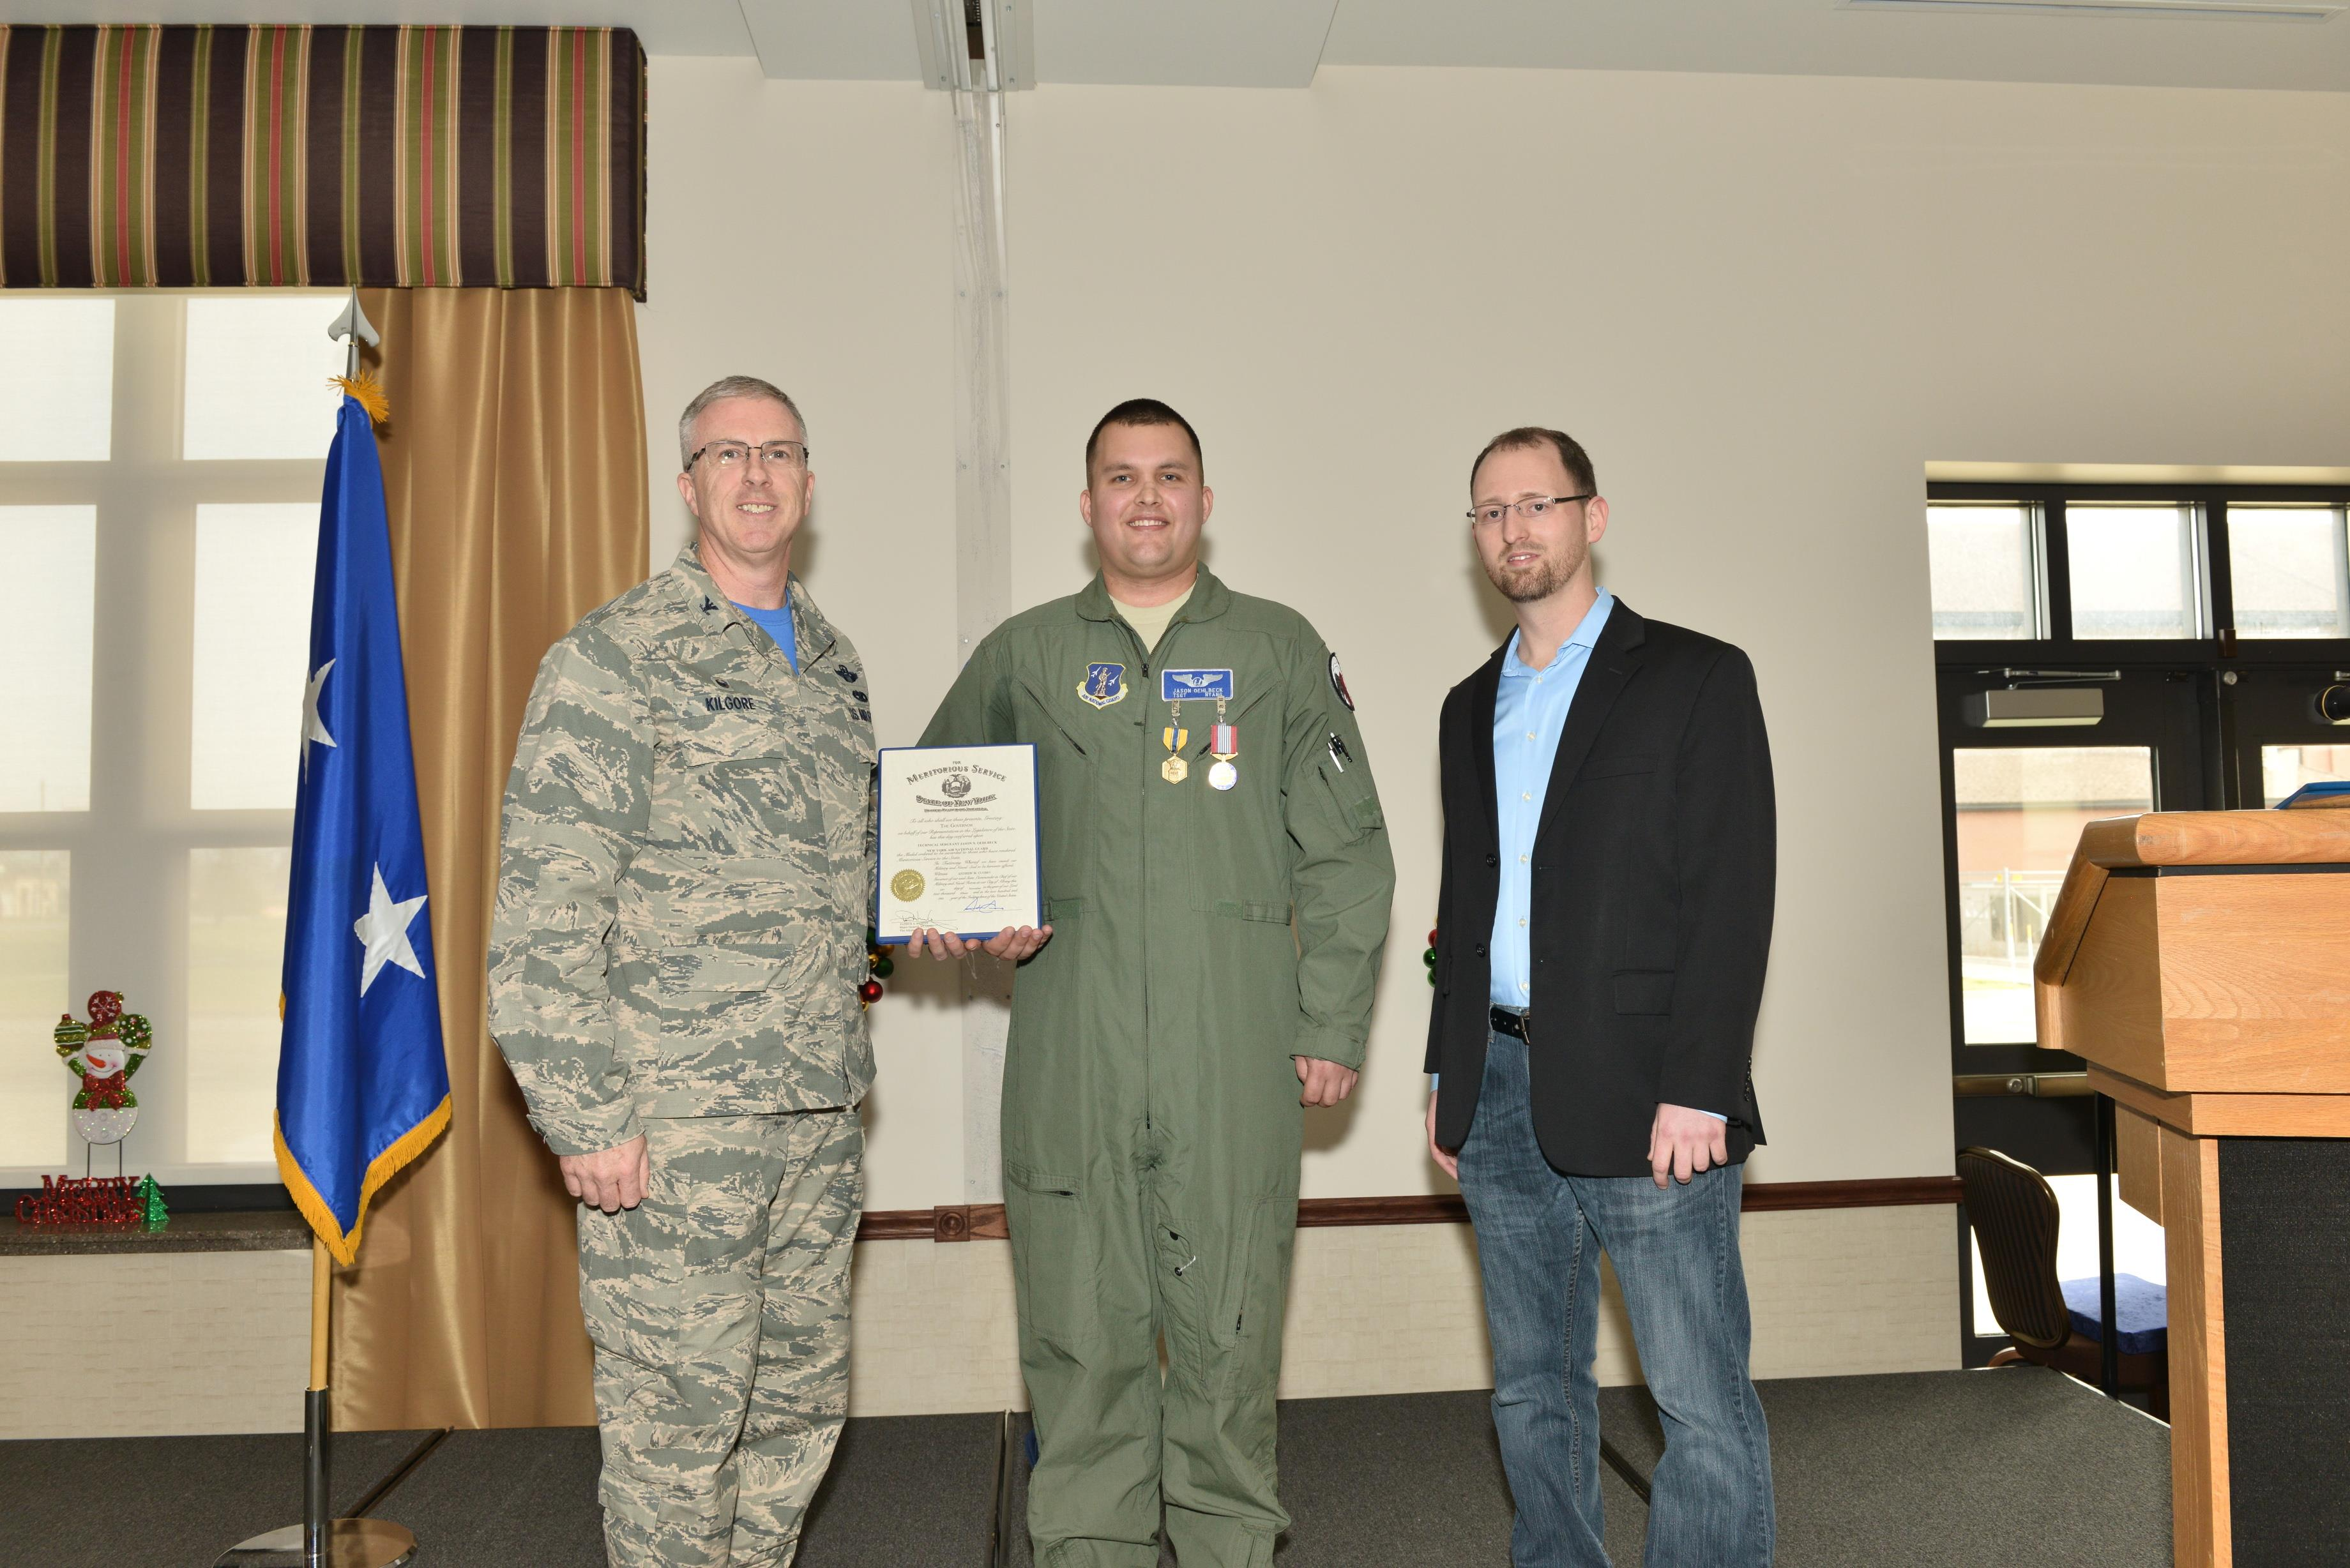 Niagara Airman Meets Man He Saved With Cpr Receives Medals